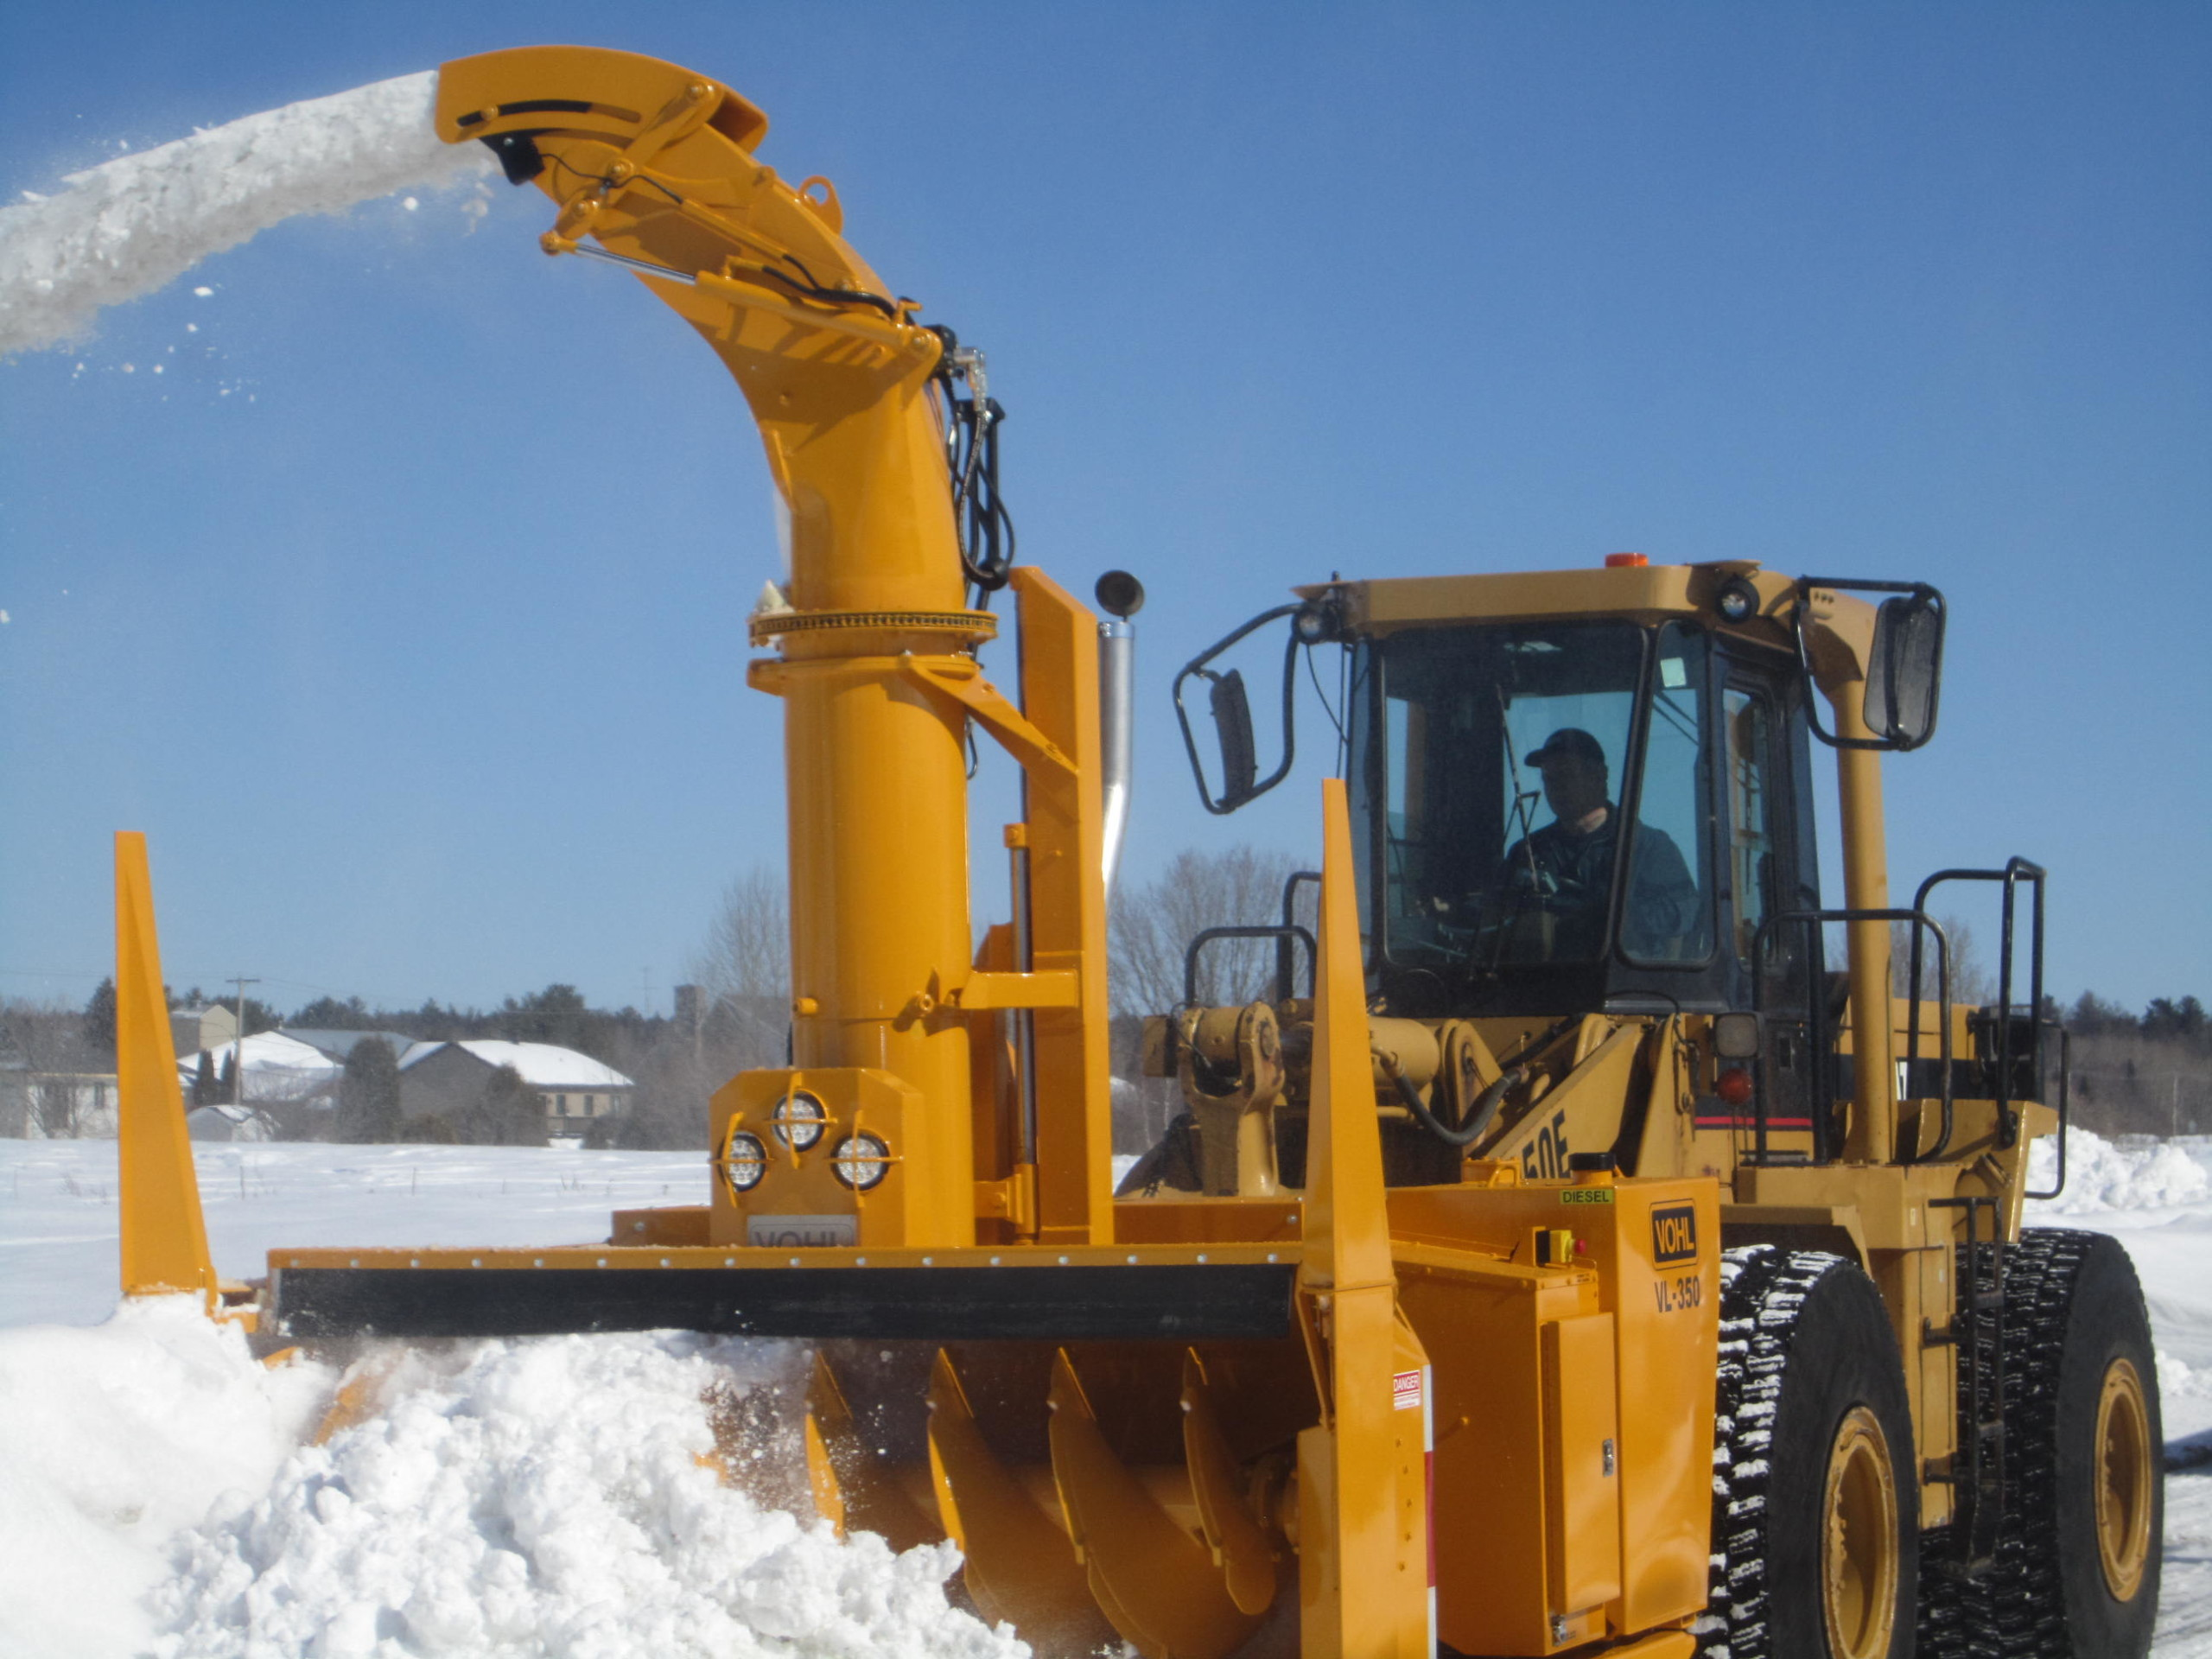 New snow removal machine